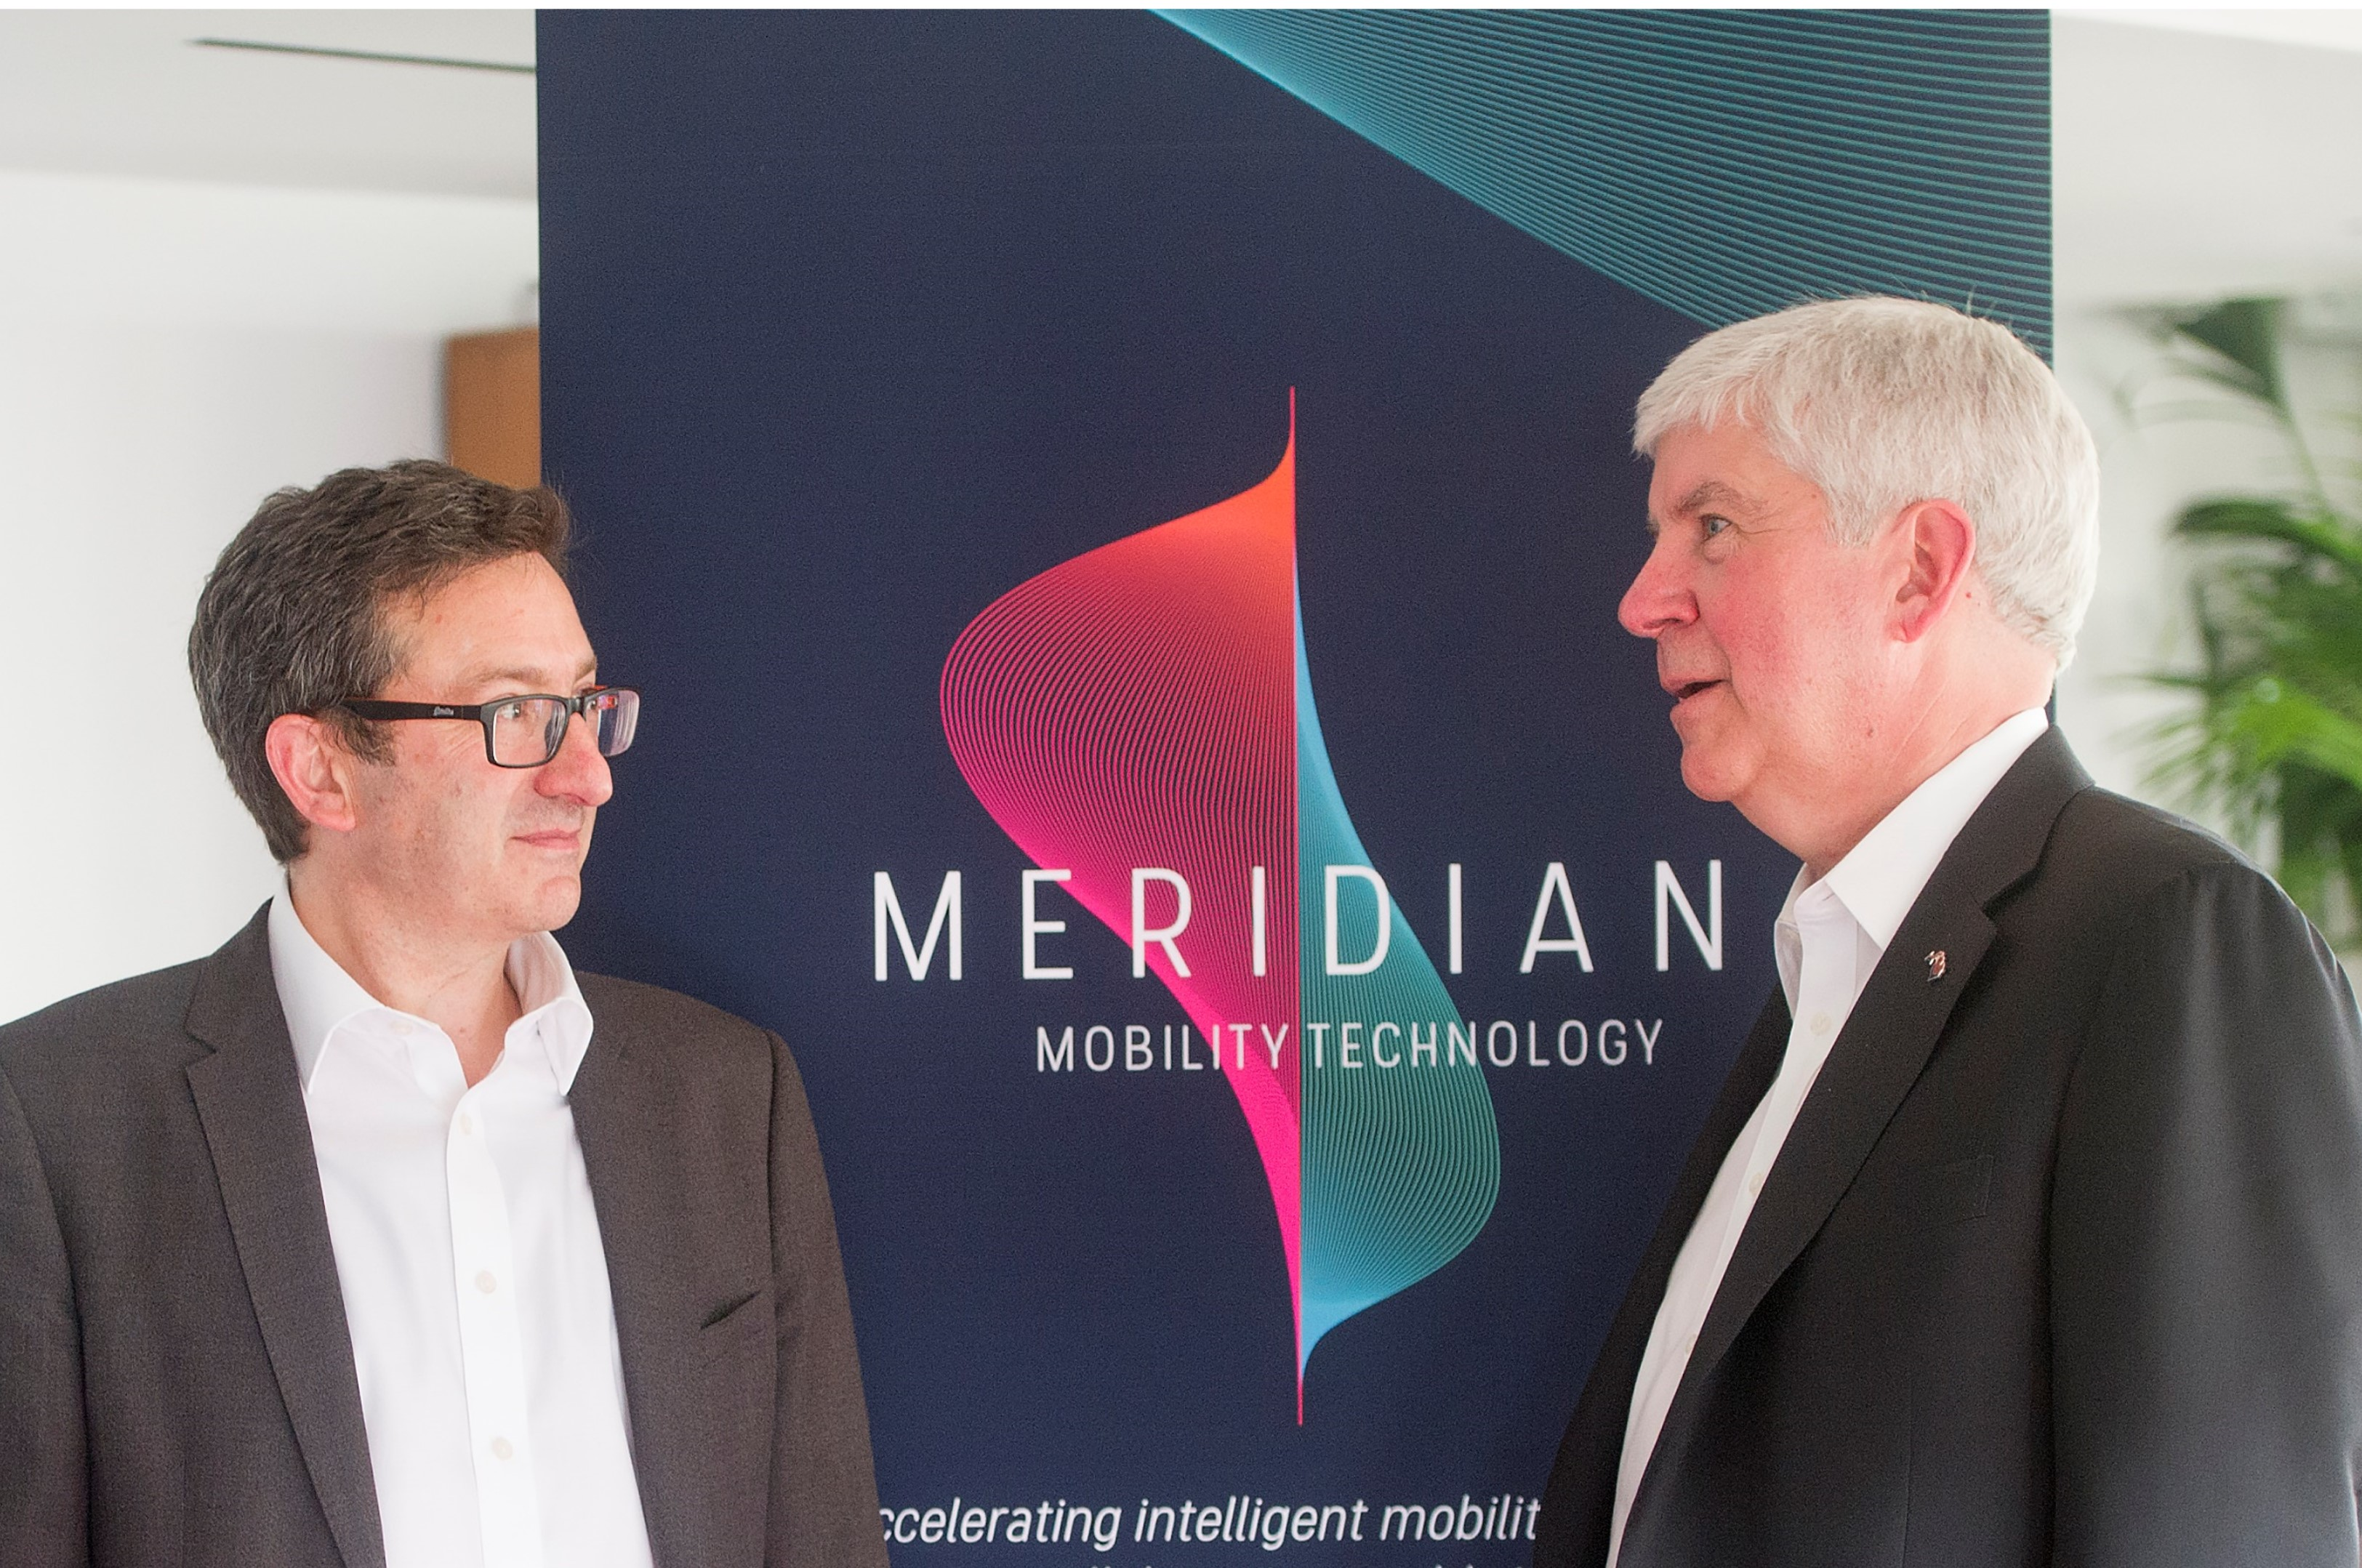 Dr Daniel Ruiz, CEO Meridian (l) and Governor Rick Snyder discuss the MoU between the UK and the USA